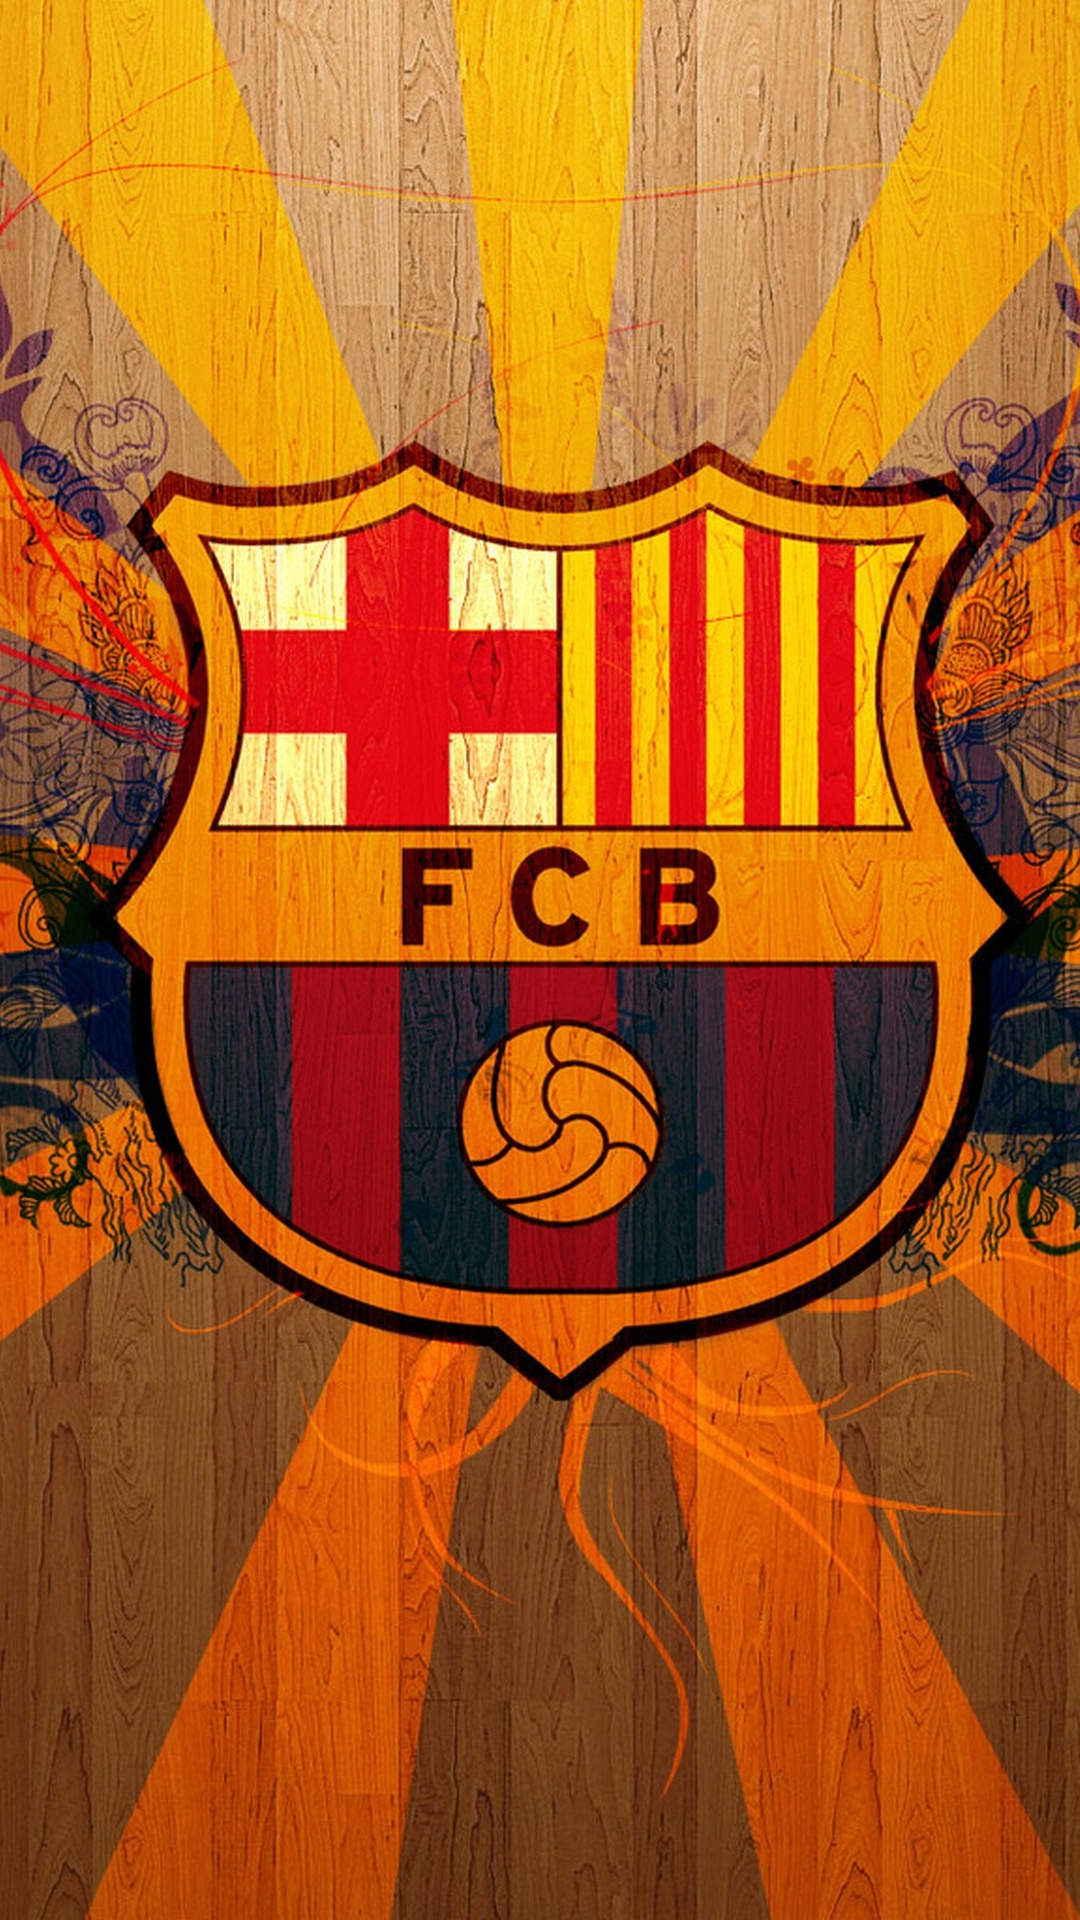 wallpapers for galaxy - fc barcelona logo